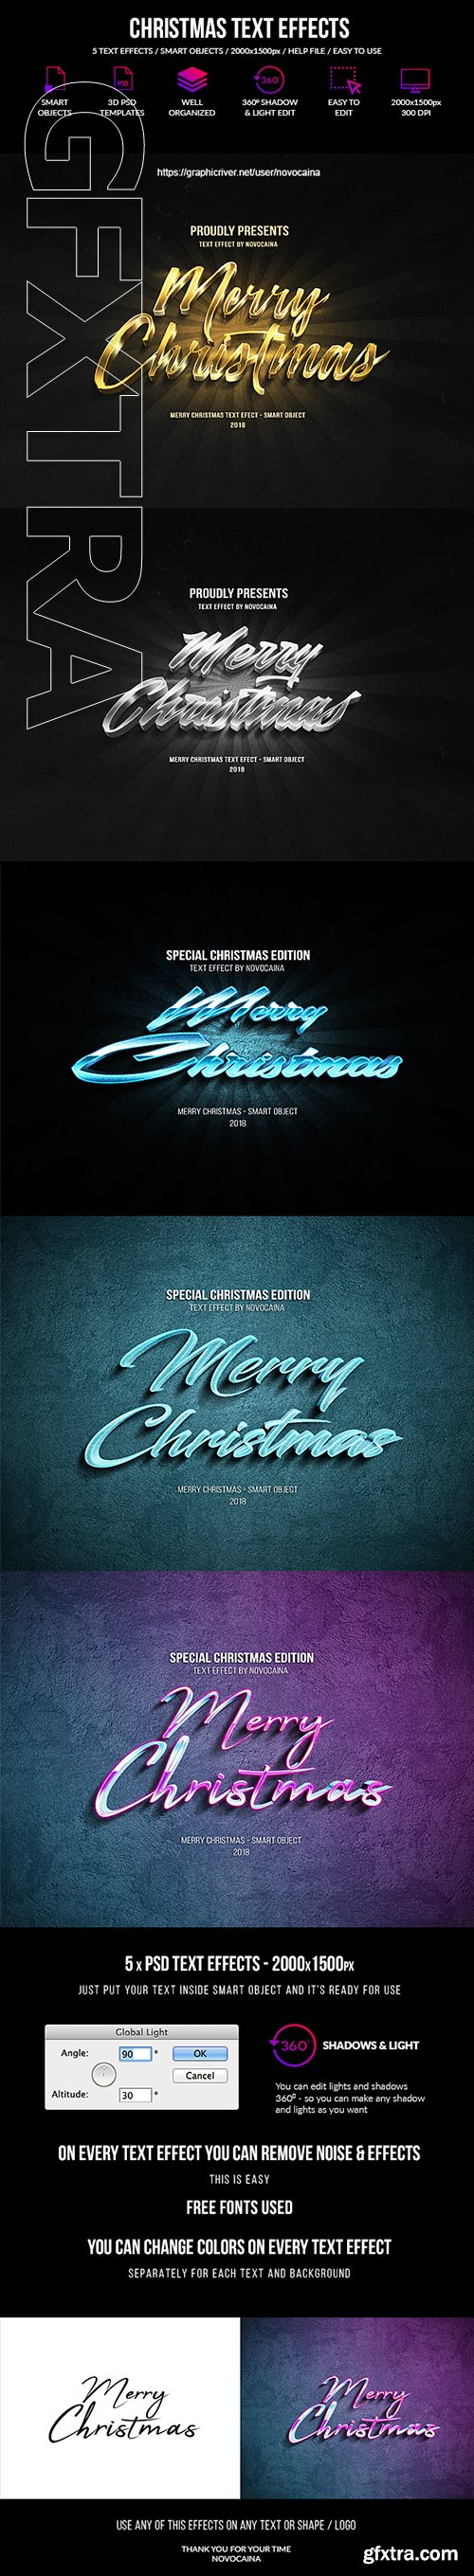 GraphicRiver - Christmas Text Effects 22809260